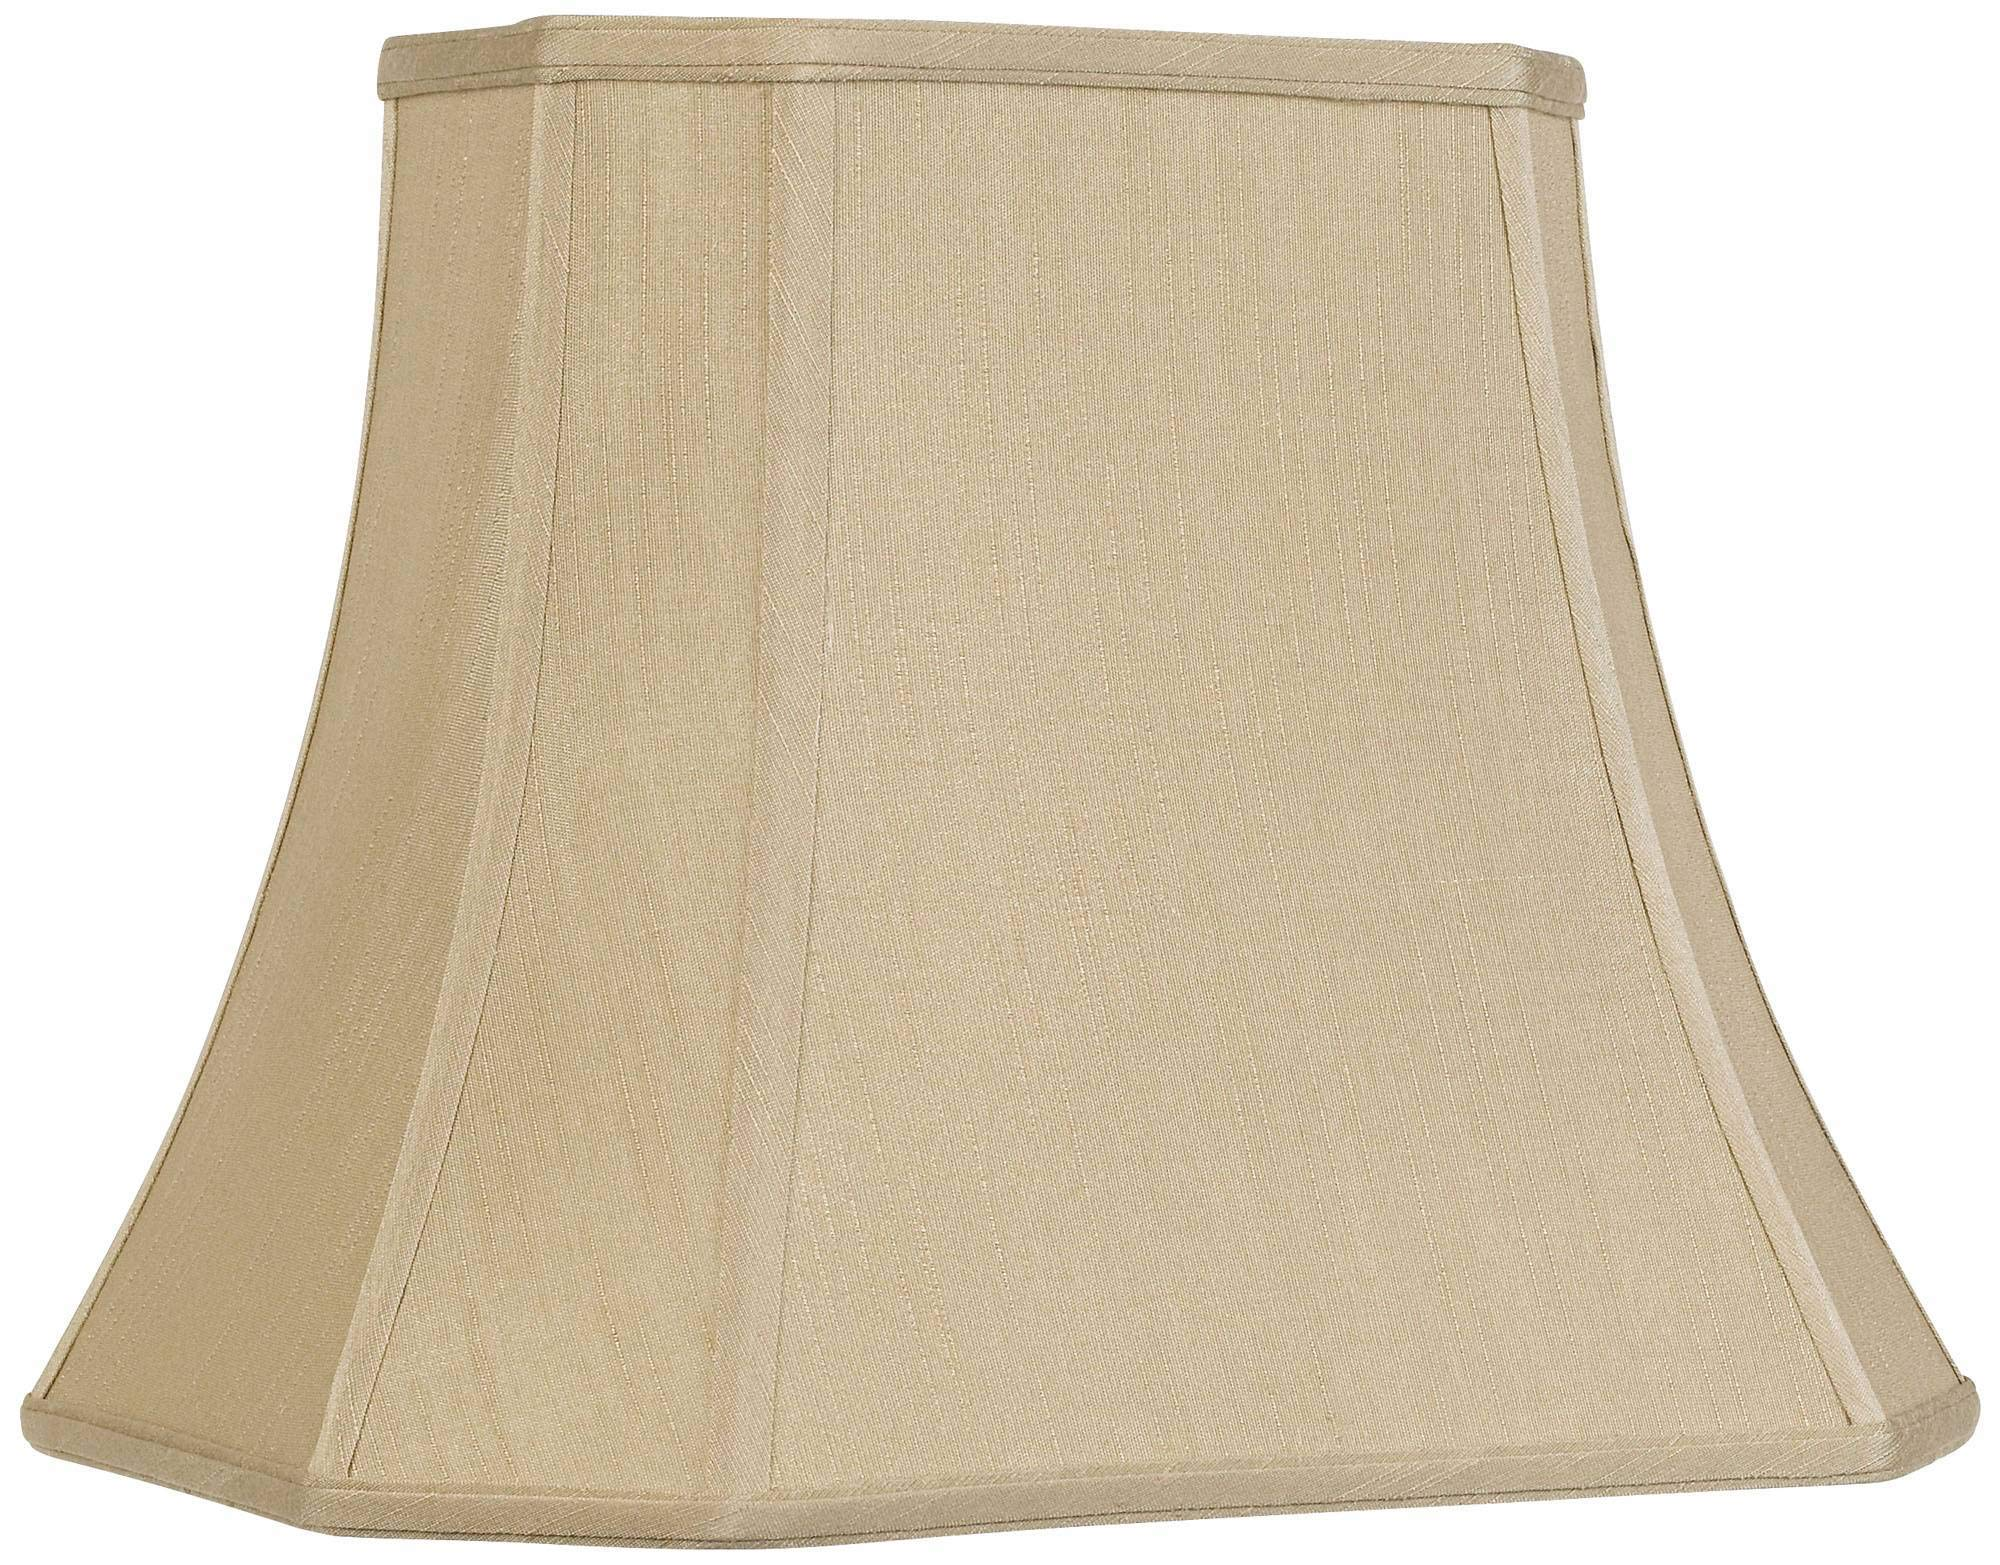 Imperial Taupe Rectangle Cut Corner Shade 10x16x13 (Spider) - Imperial Shade